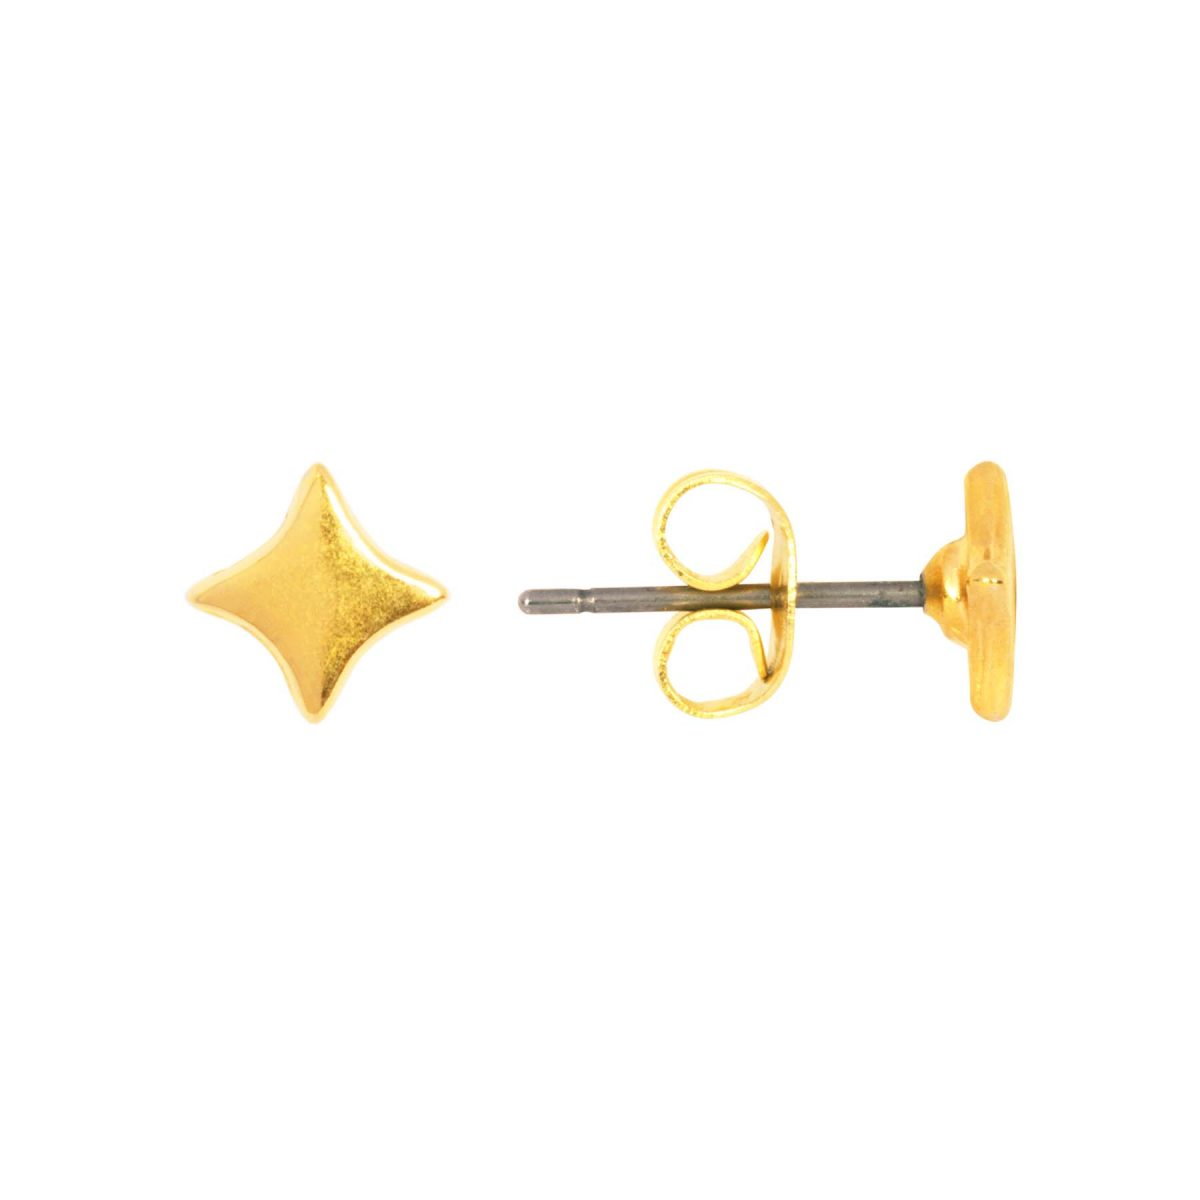 &anne studs - 24k gold plated - sparkle